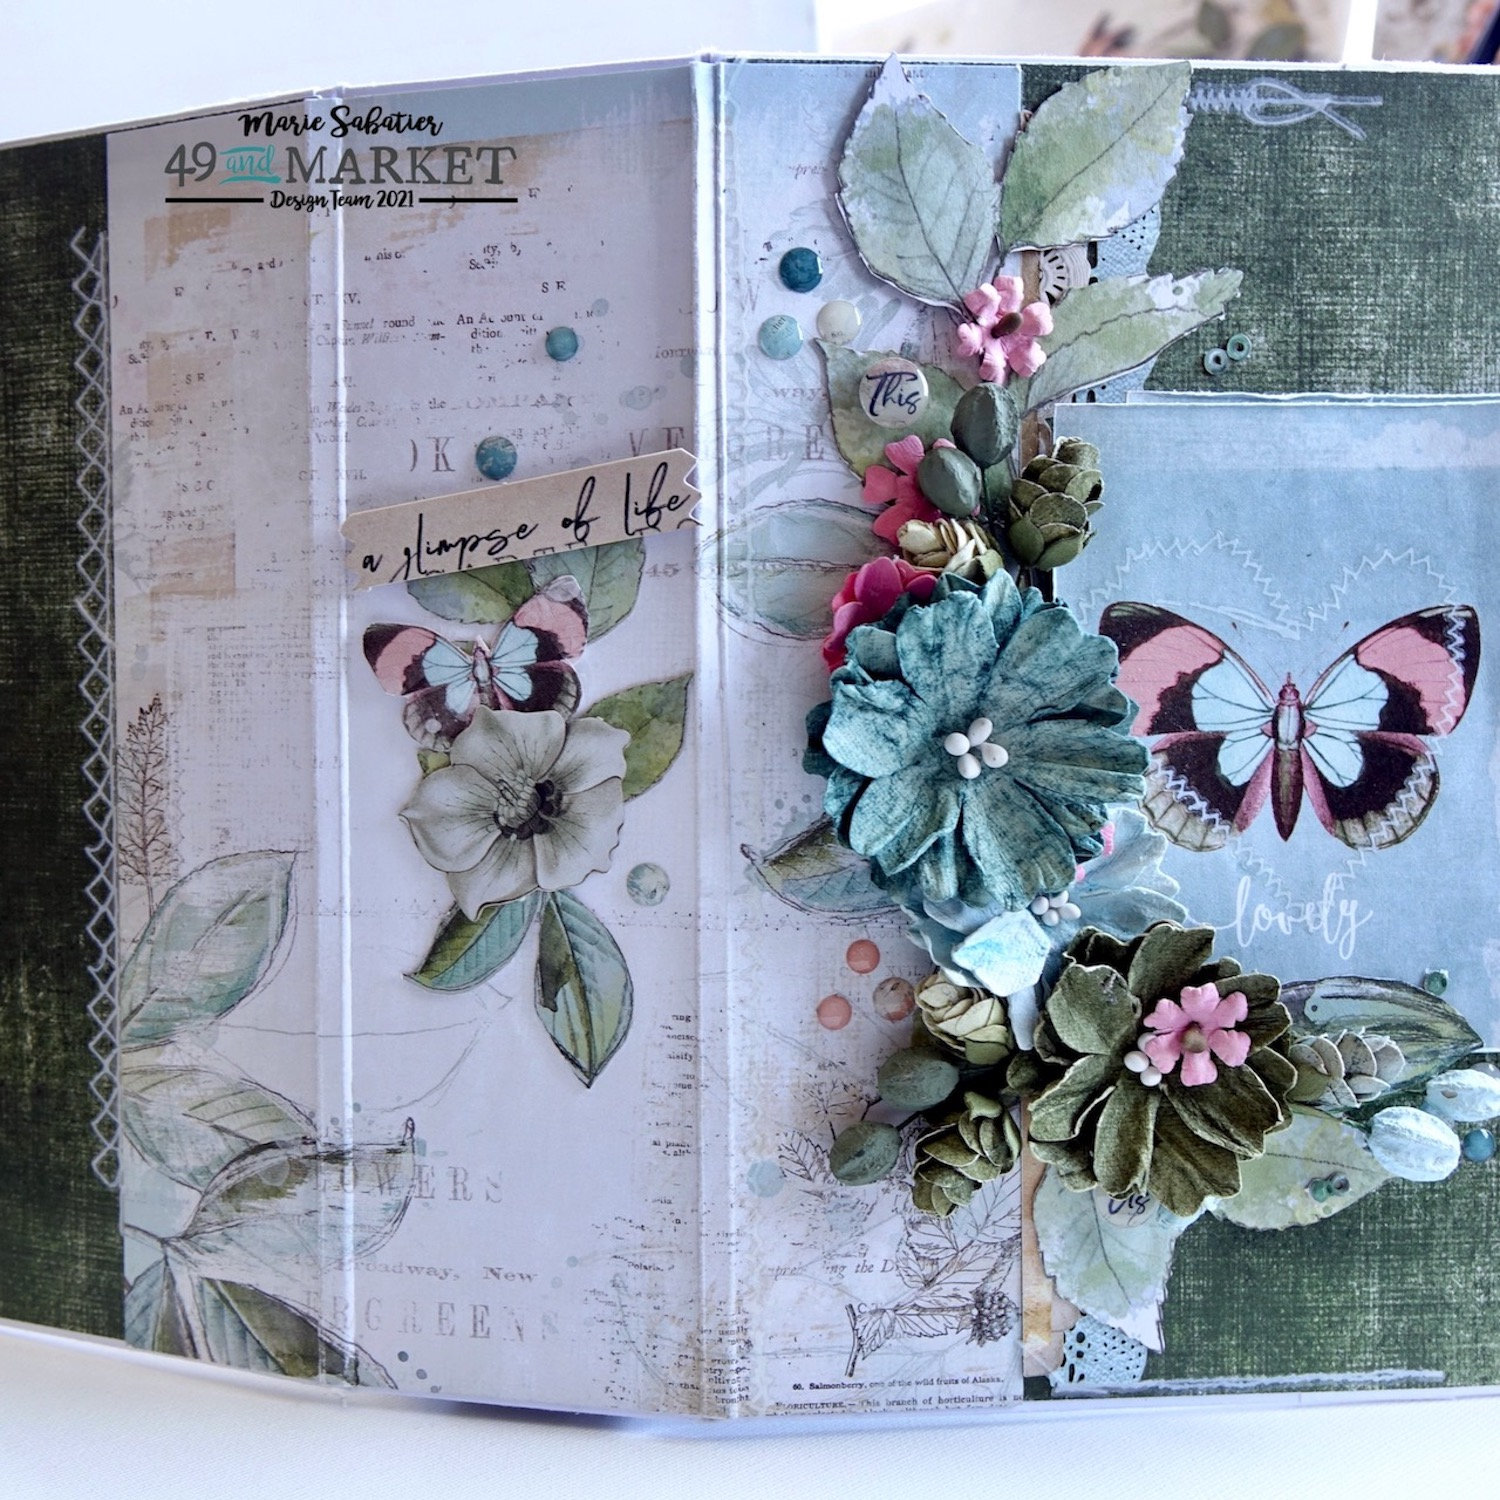 Lovely - Mini album by Marie Sabatier